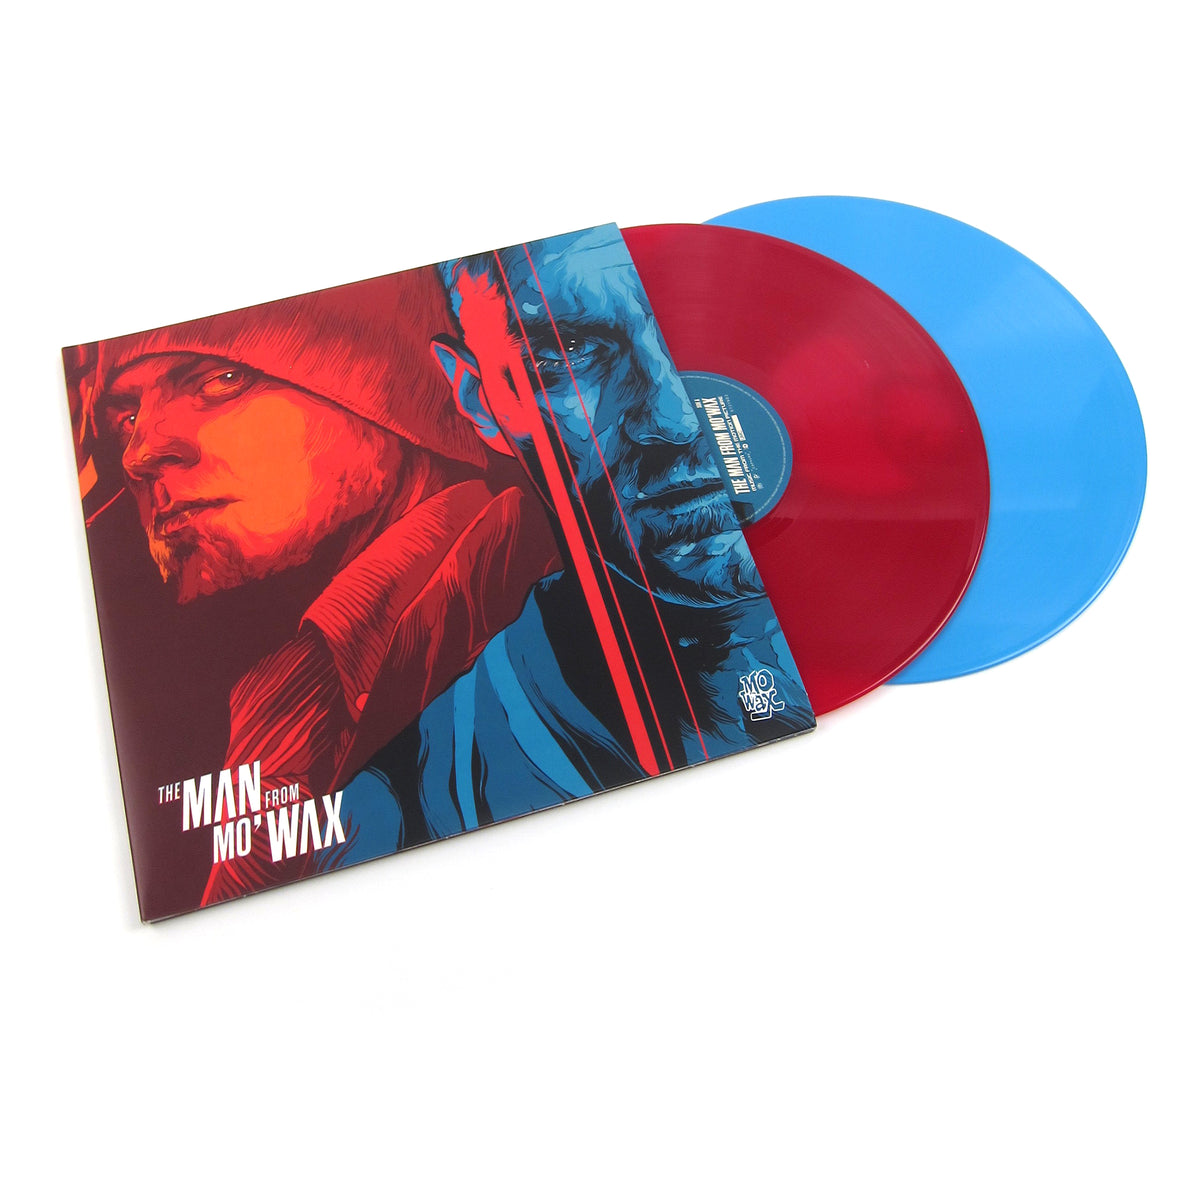 Mo' Wax: Man From Mo' Wax (Colored Vinyl) Vinyl 2LP